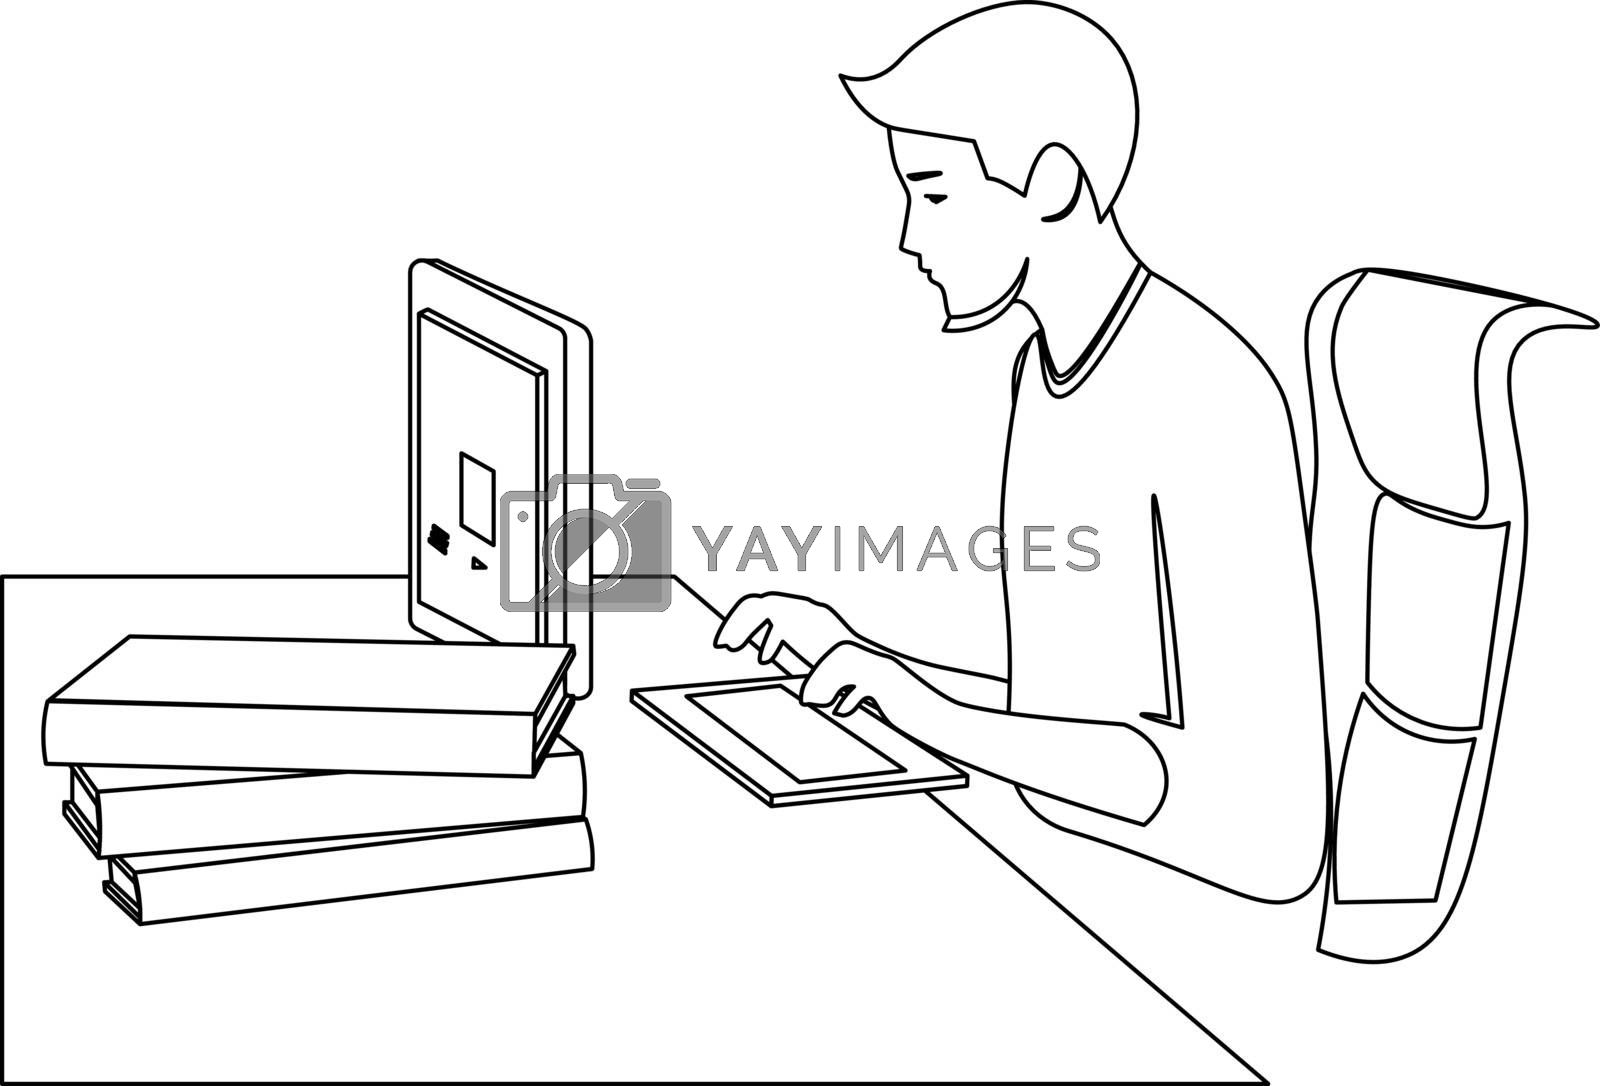 Minimal line art of workplace and the young man sitting at the computer